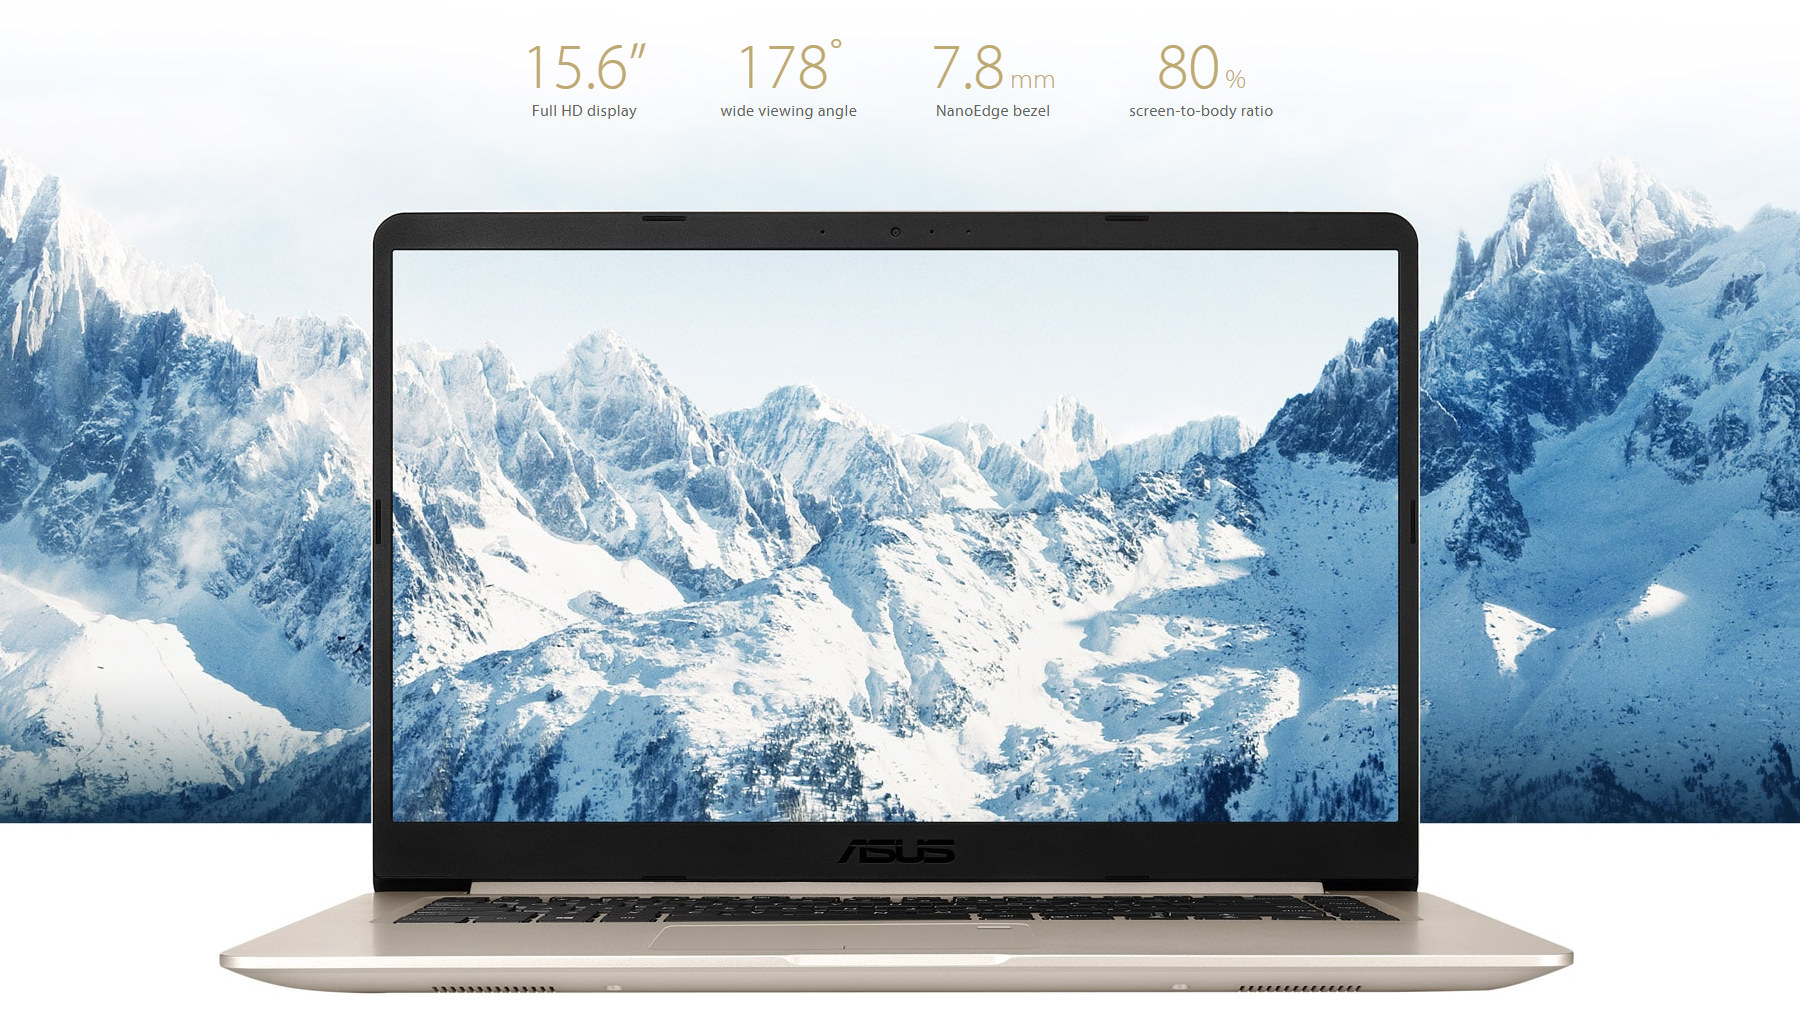 Image result for asus s510ua NanoEdge display with ultra-narrow bezel